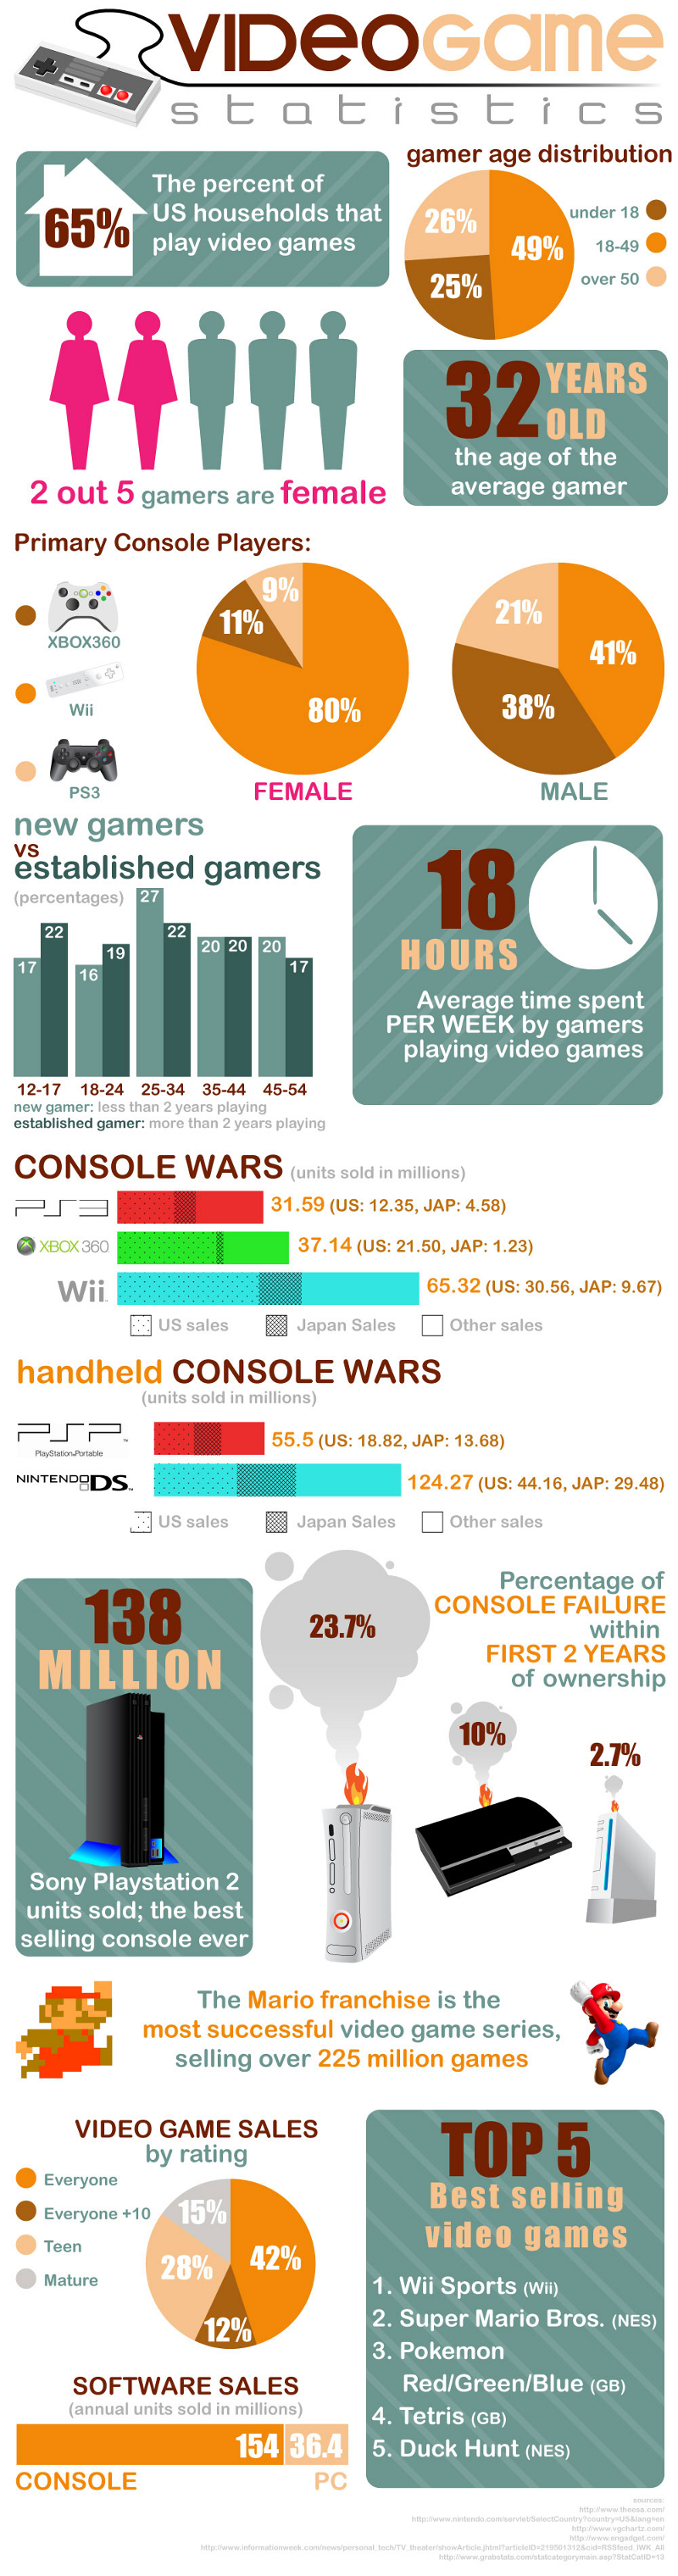 Video Game Industry Statistics